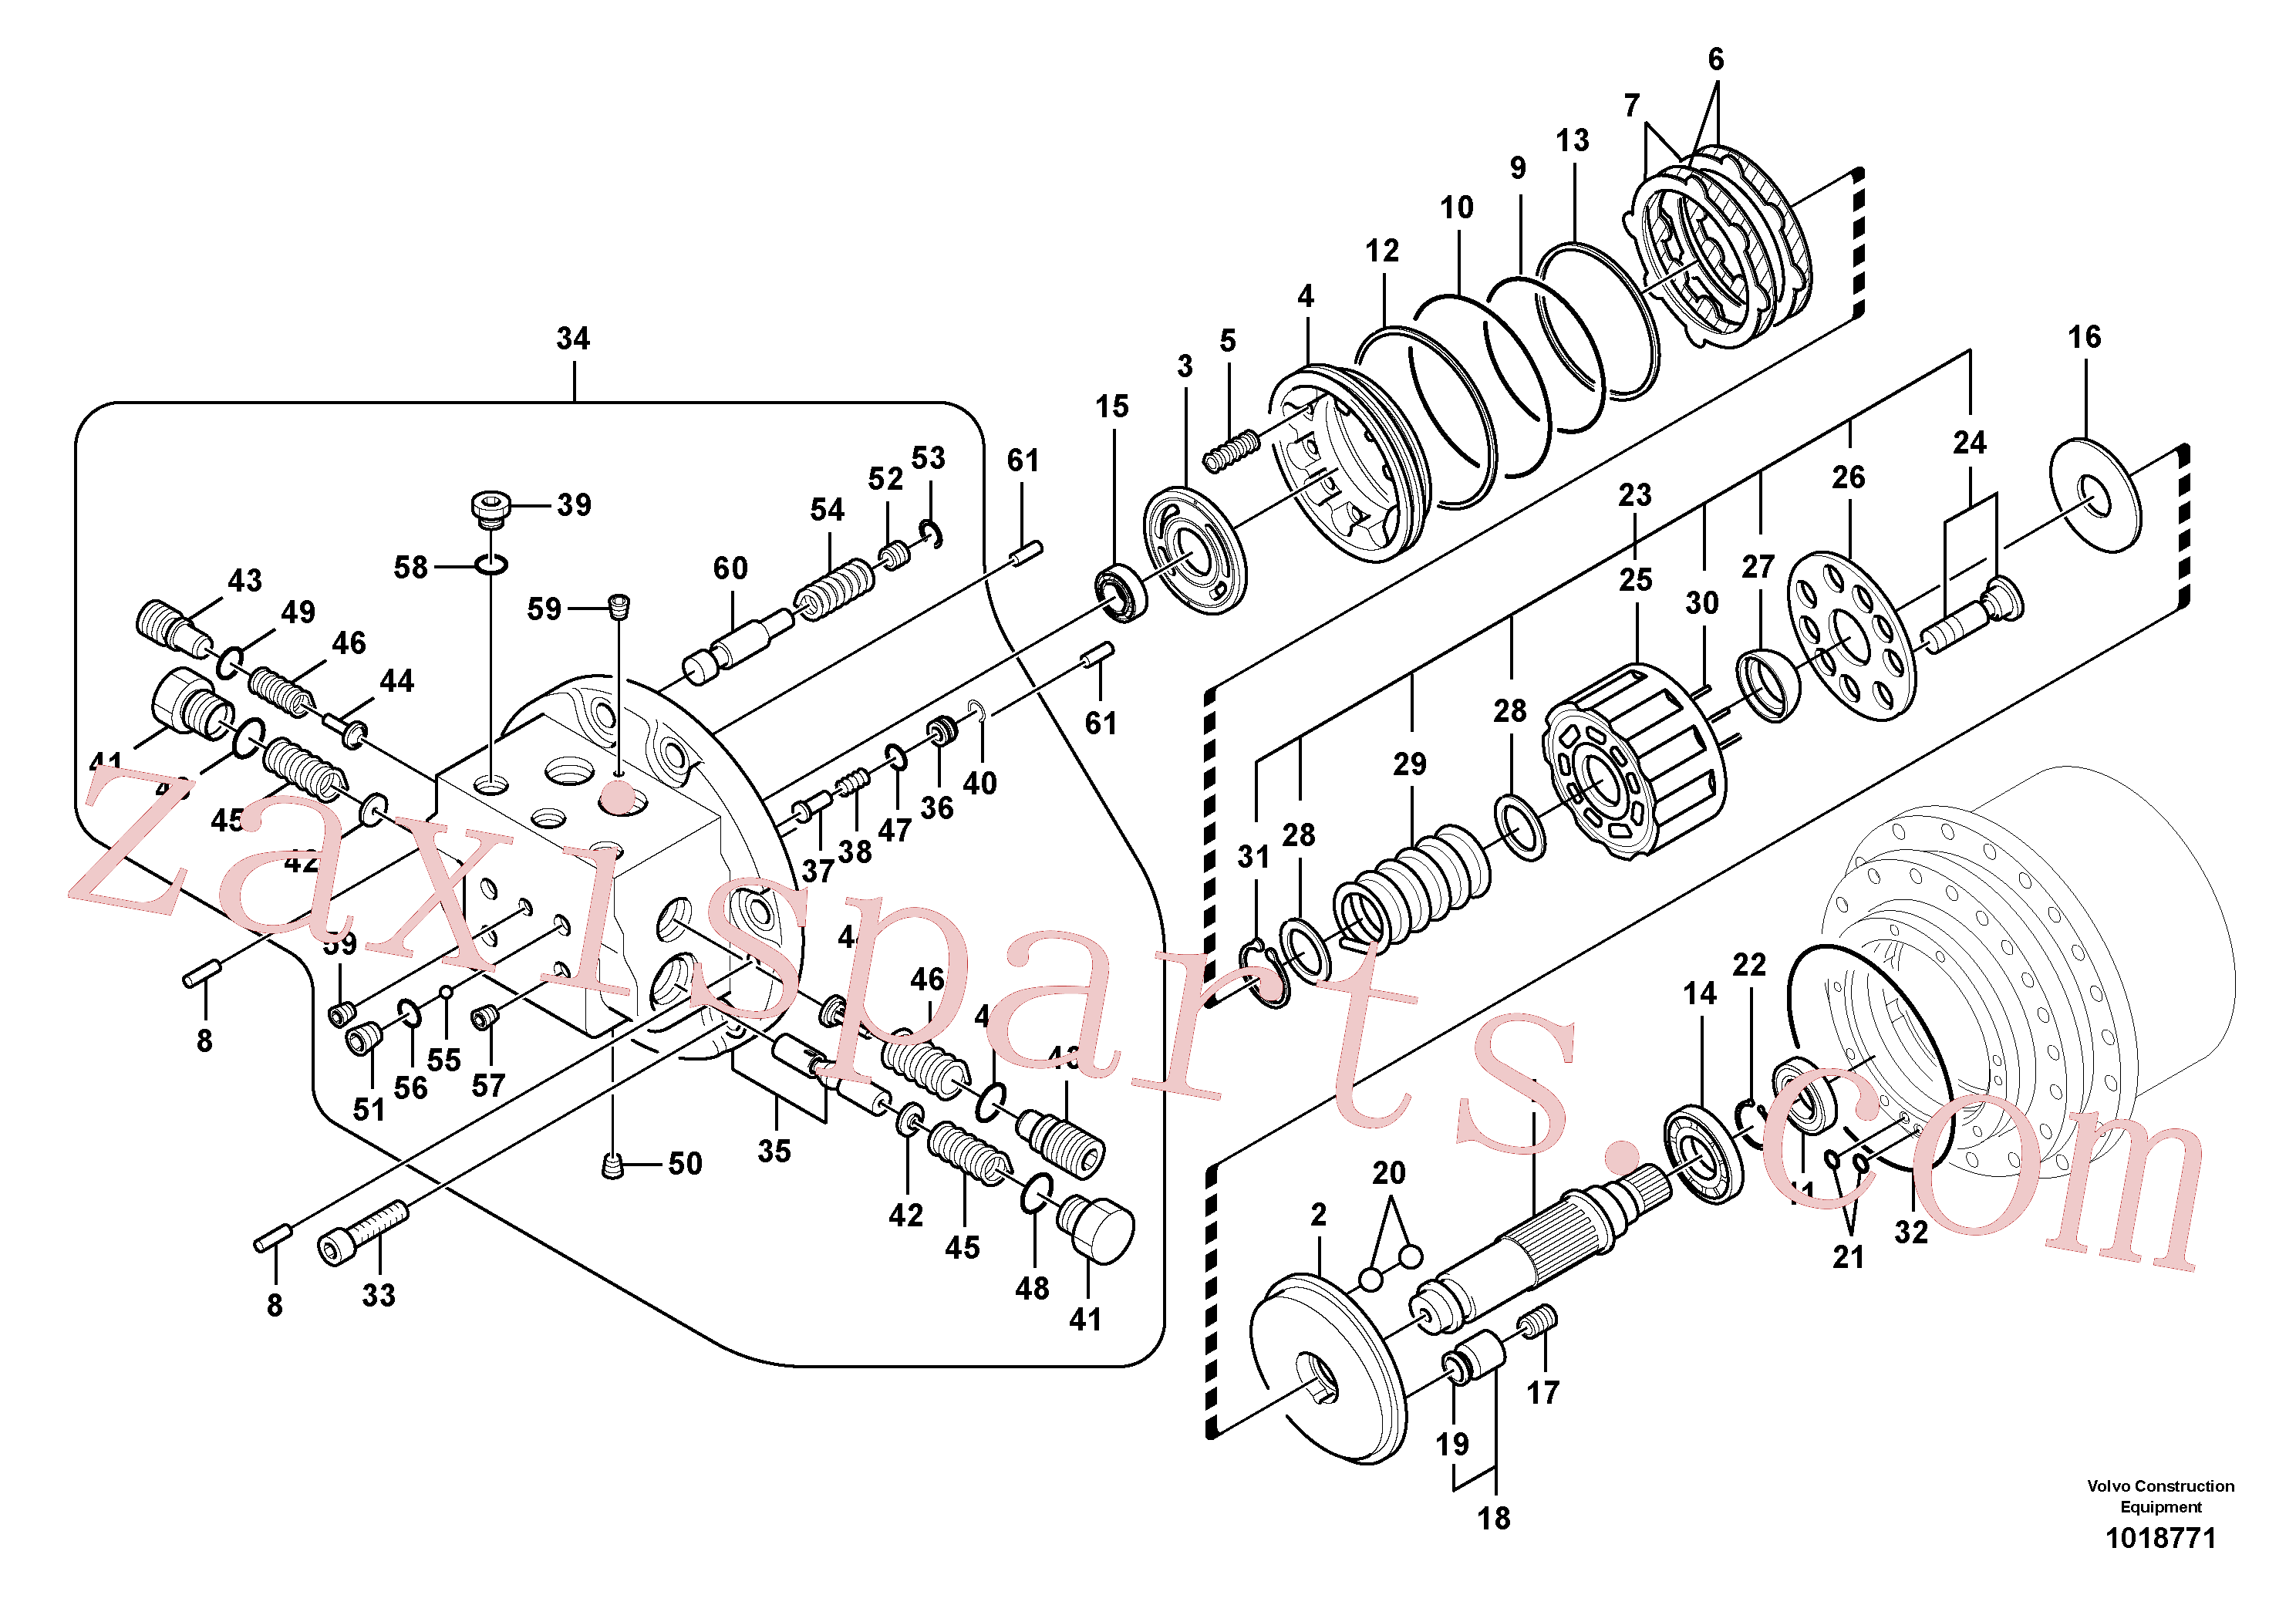 SA8230-30660 for Volvo Travel motor(1018771 assembly)